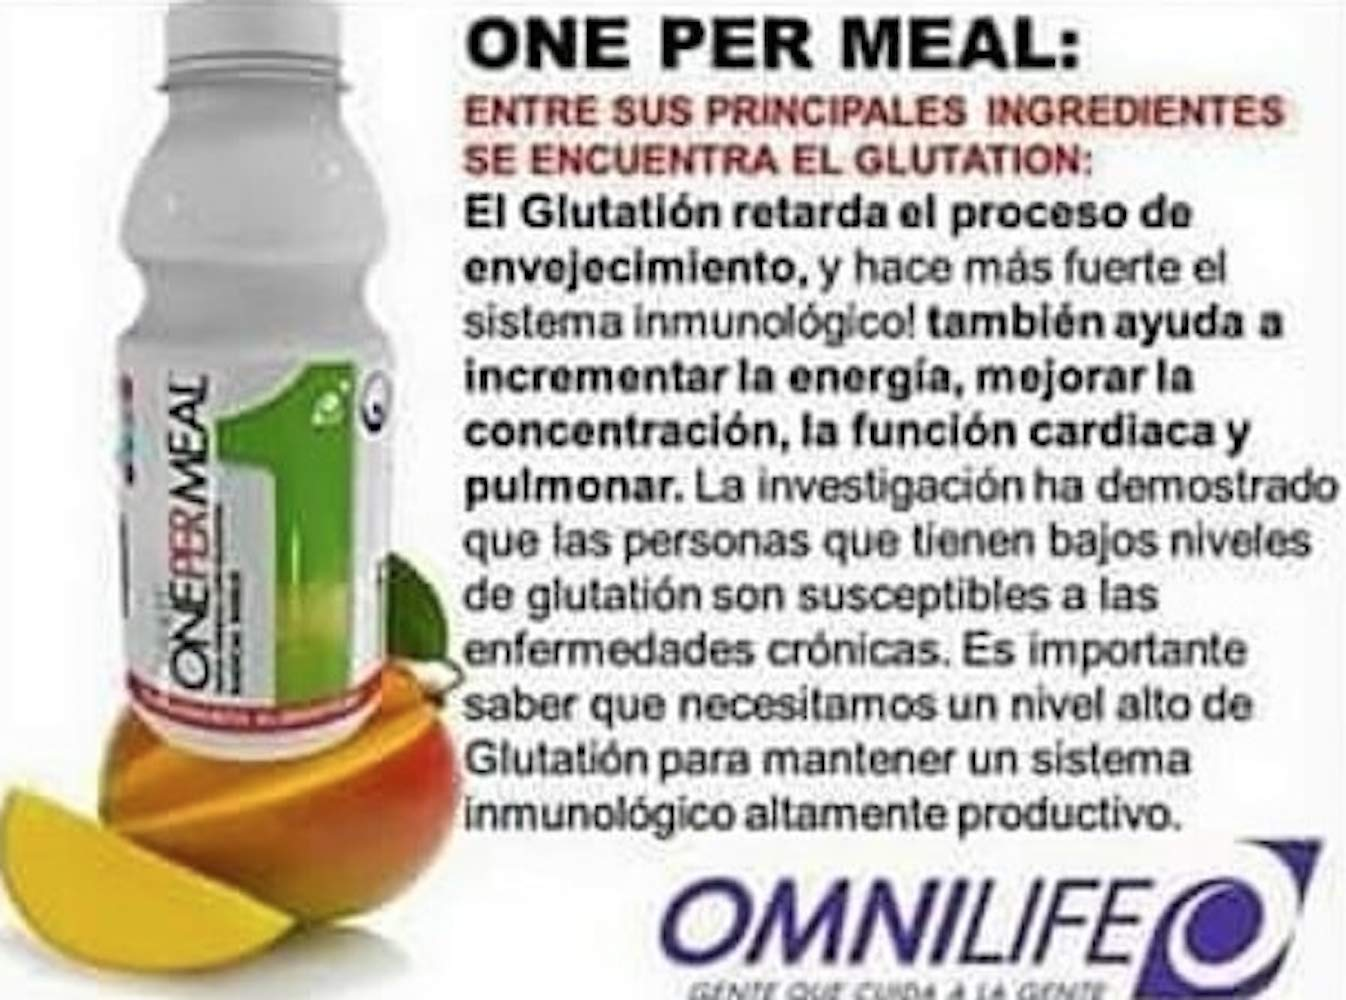 Omnilife One C Mix Plus=Dual C Mix + One per Meal, Box with 30 Sachets (150g) Shipped by Liss